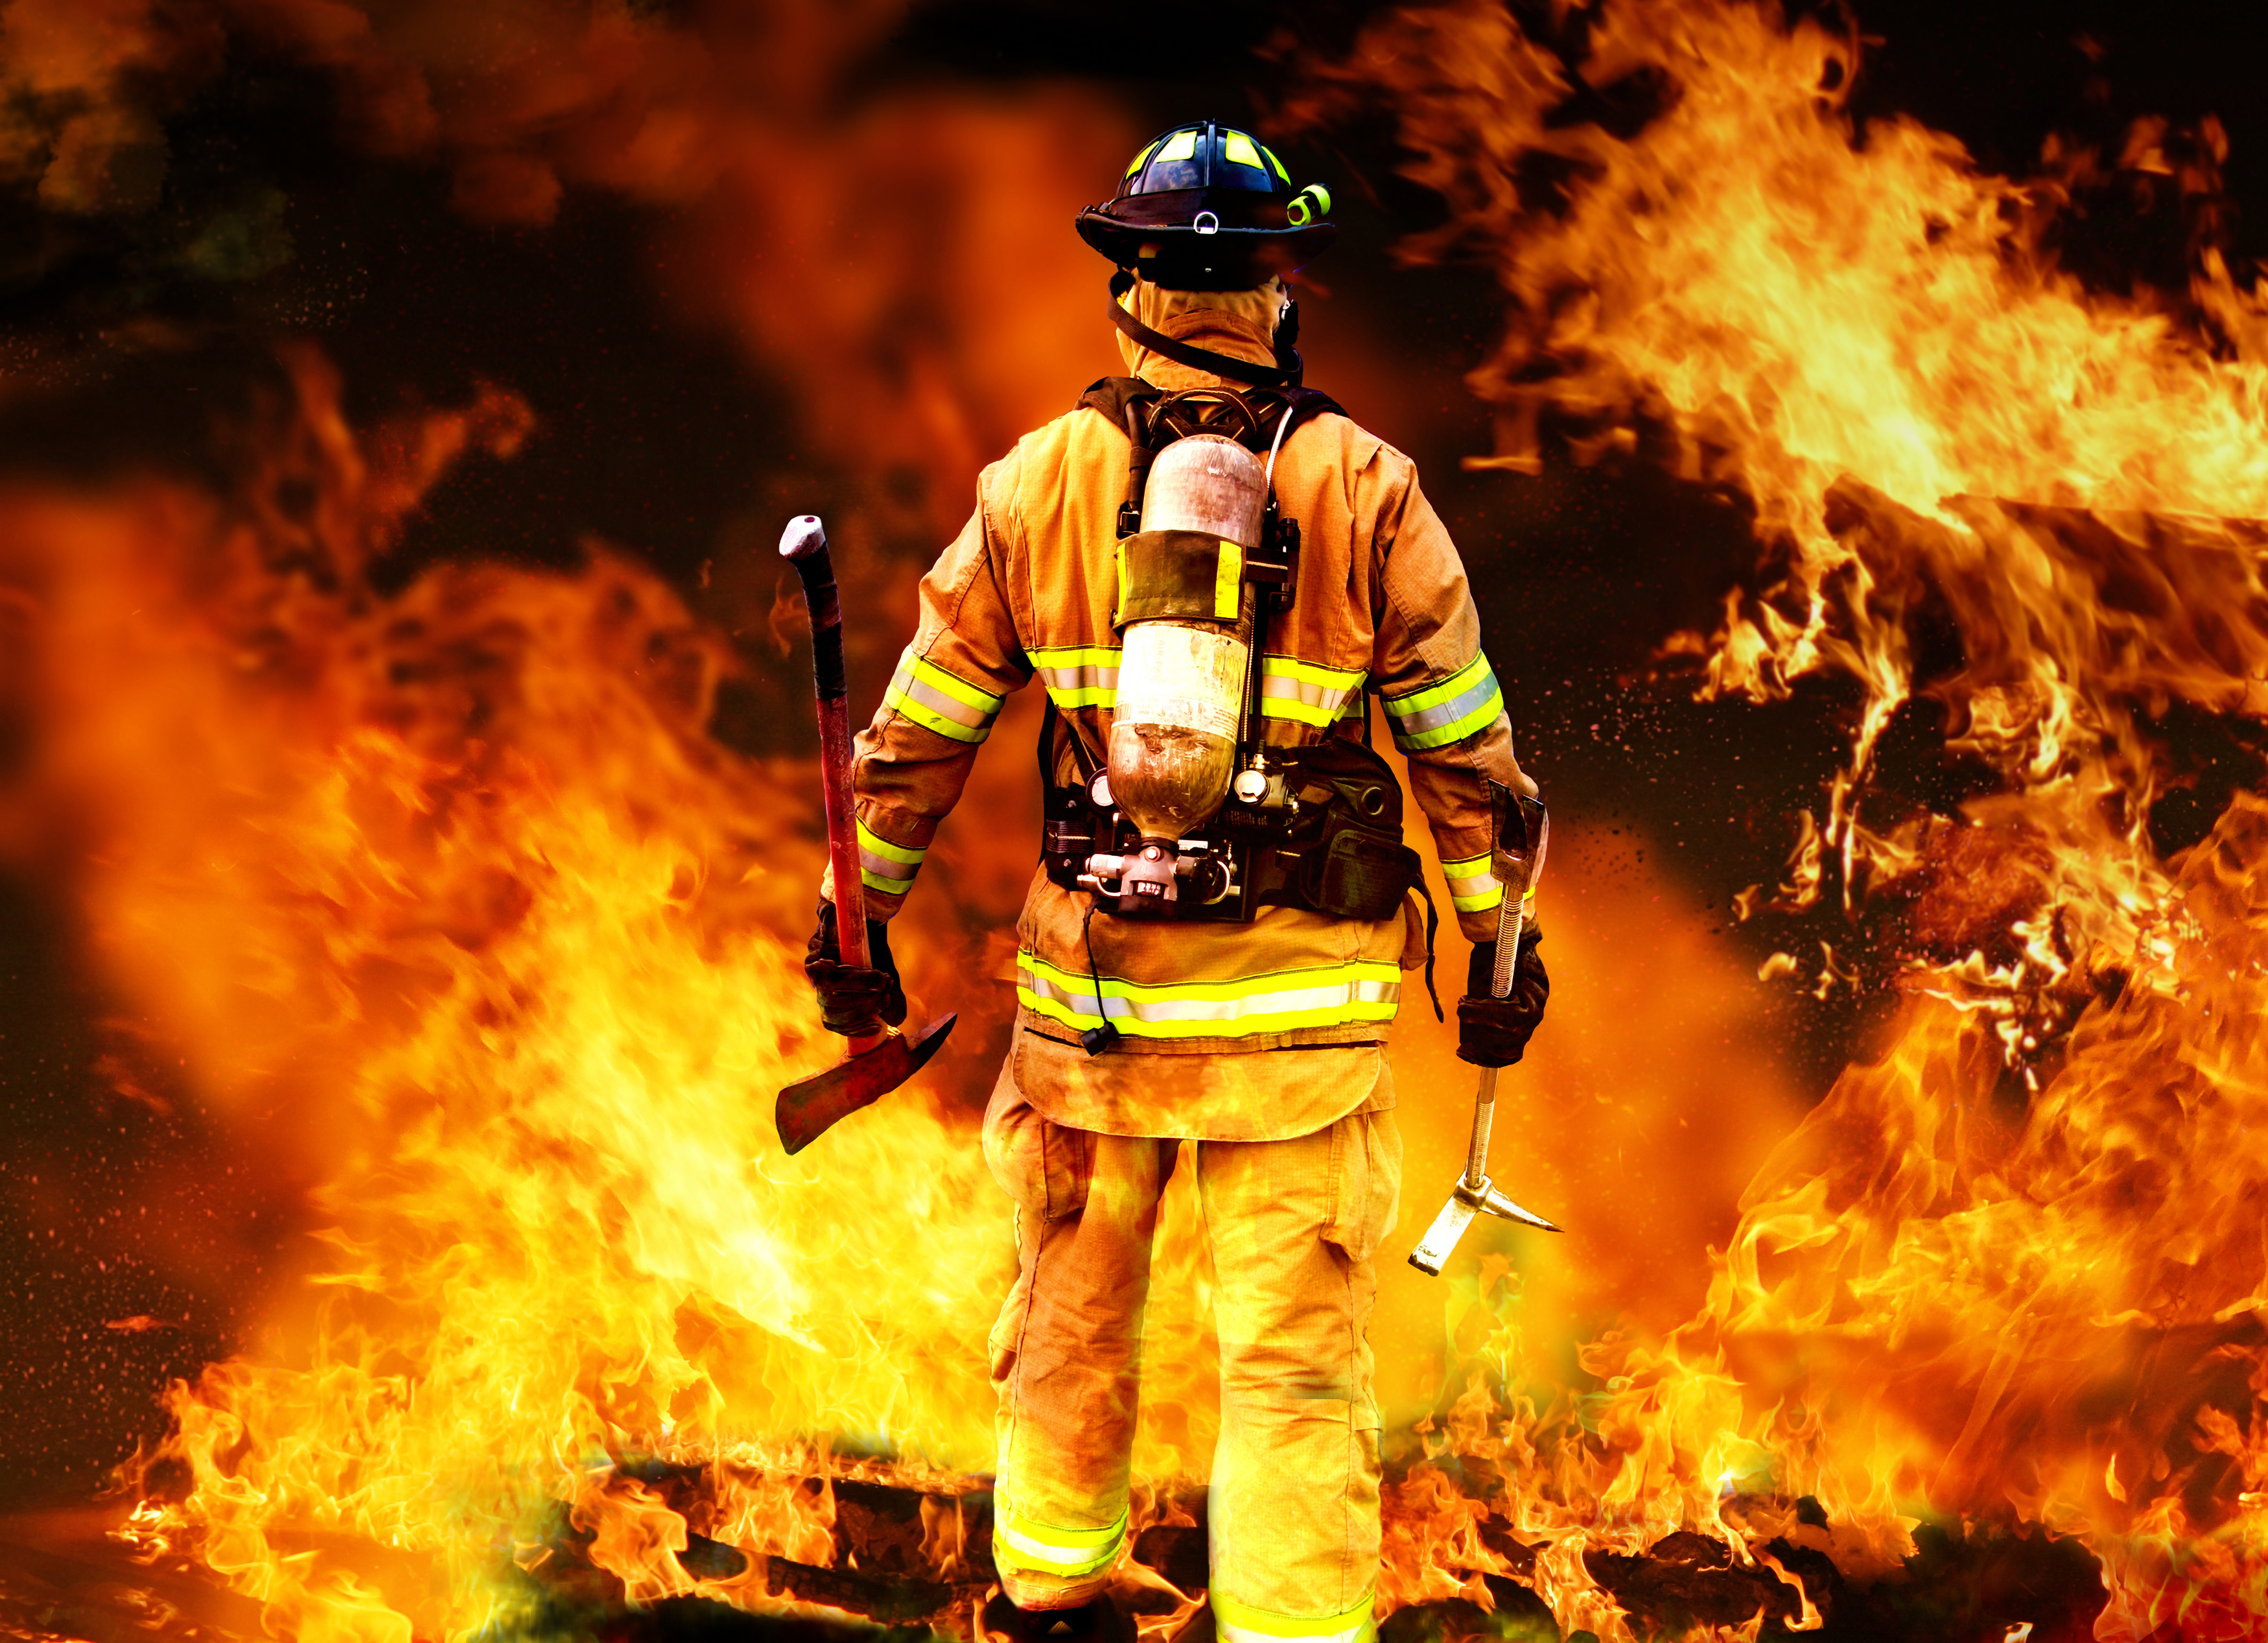 Firefighter Backgrounds, Compatible - PC, Mobile, Gadgets| 3499x2534 px